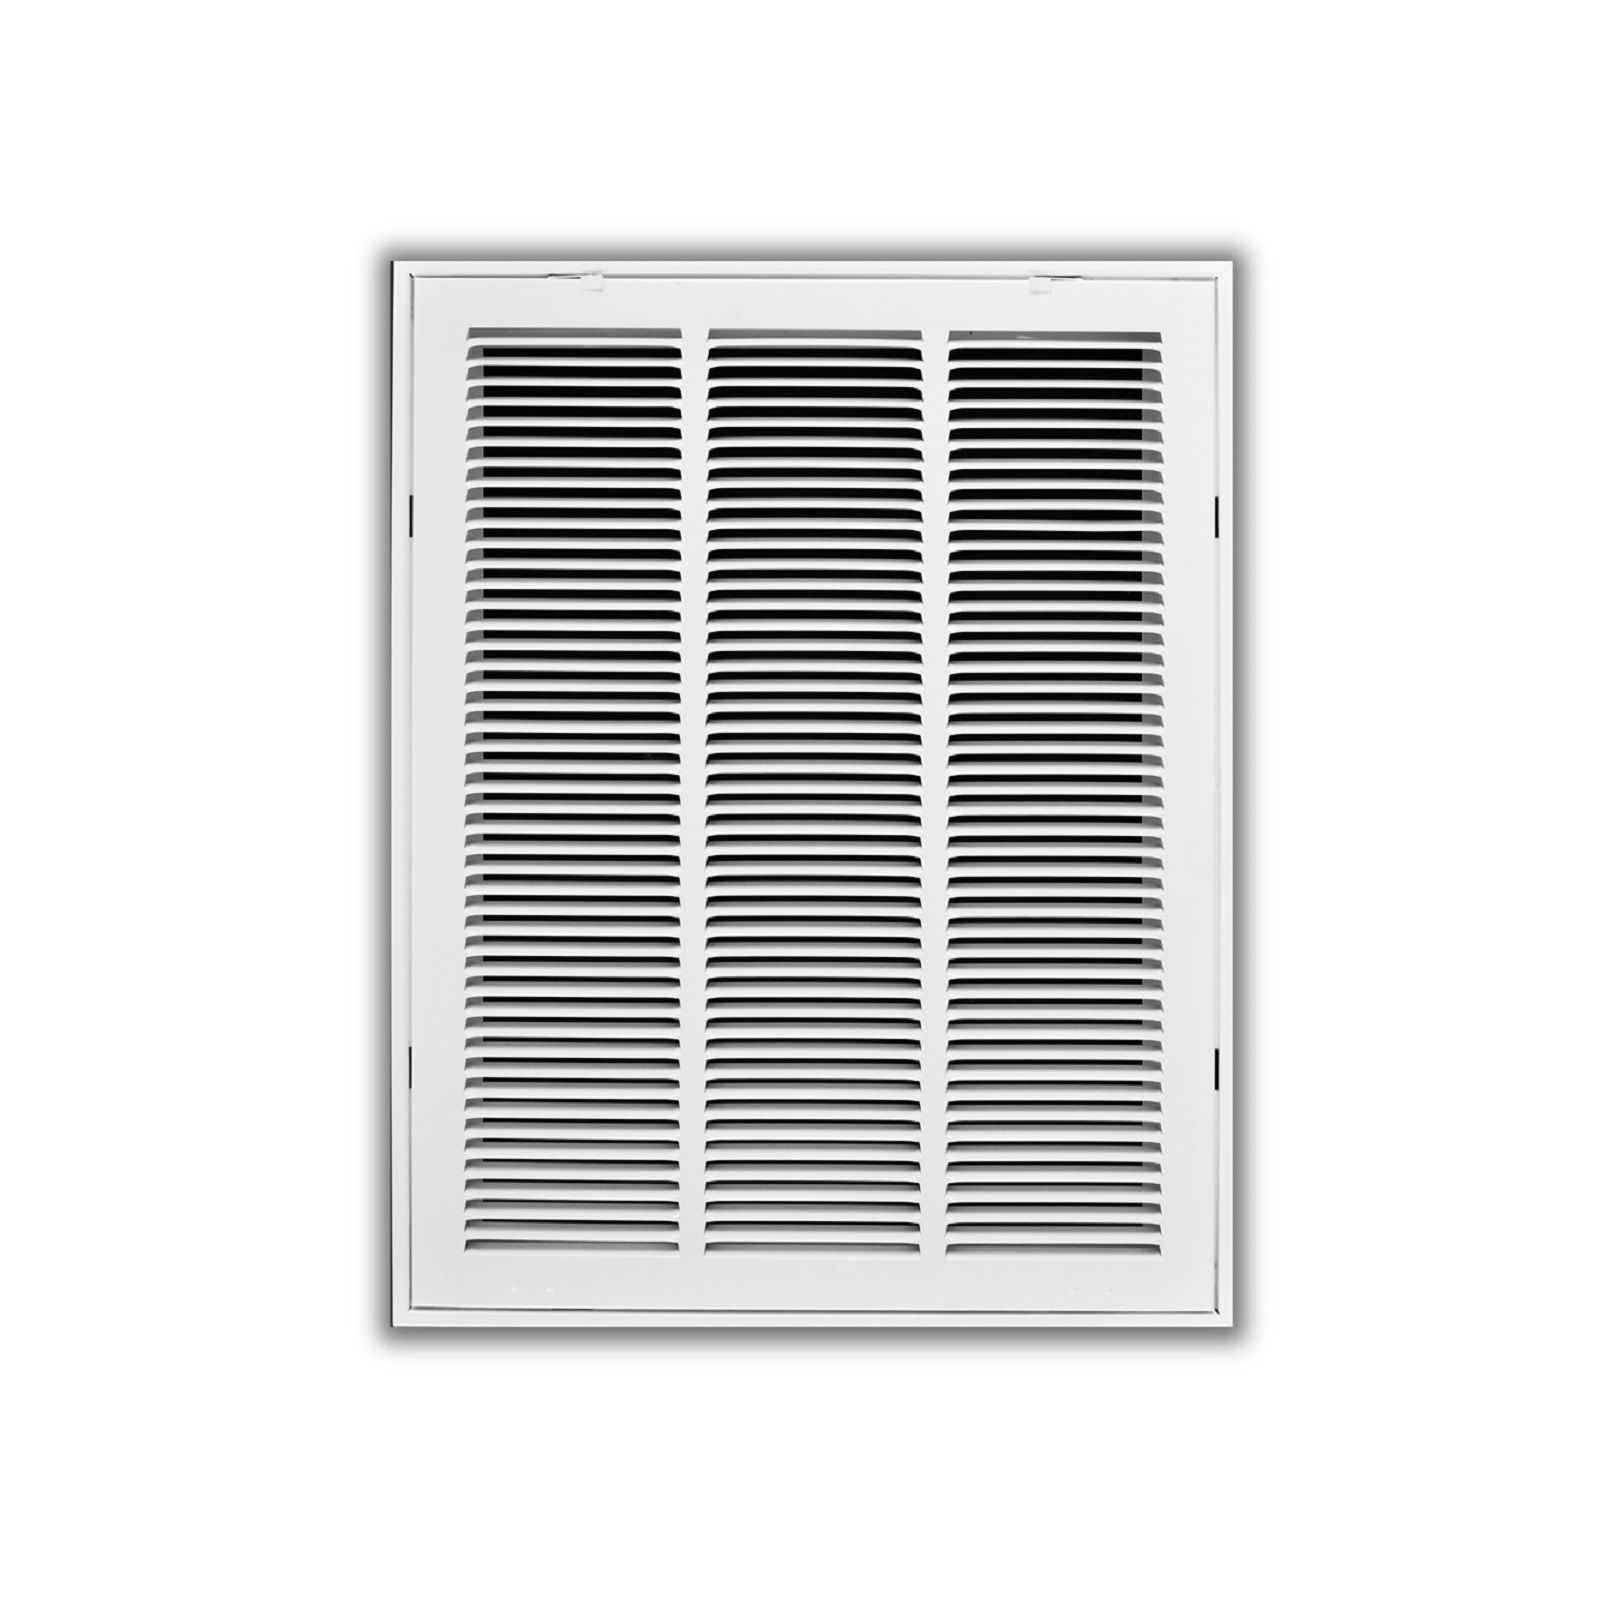 "TRUaire 190 24X20 - Steel Return Air Filter Grille With Fixed Hinged Face, White, 24"" X 20"""